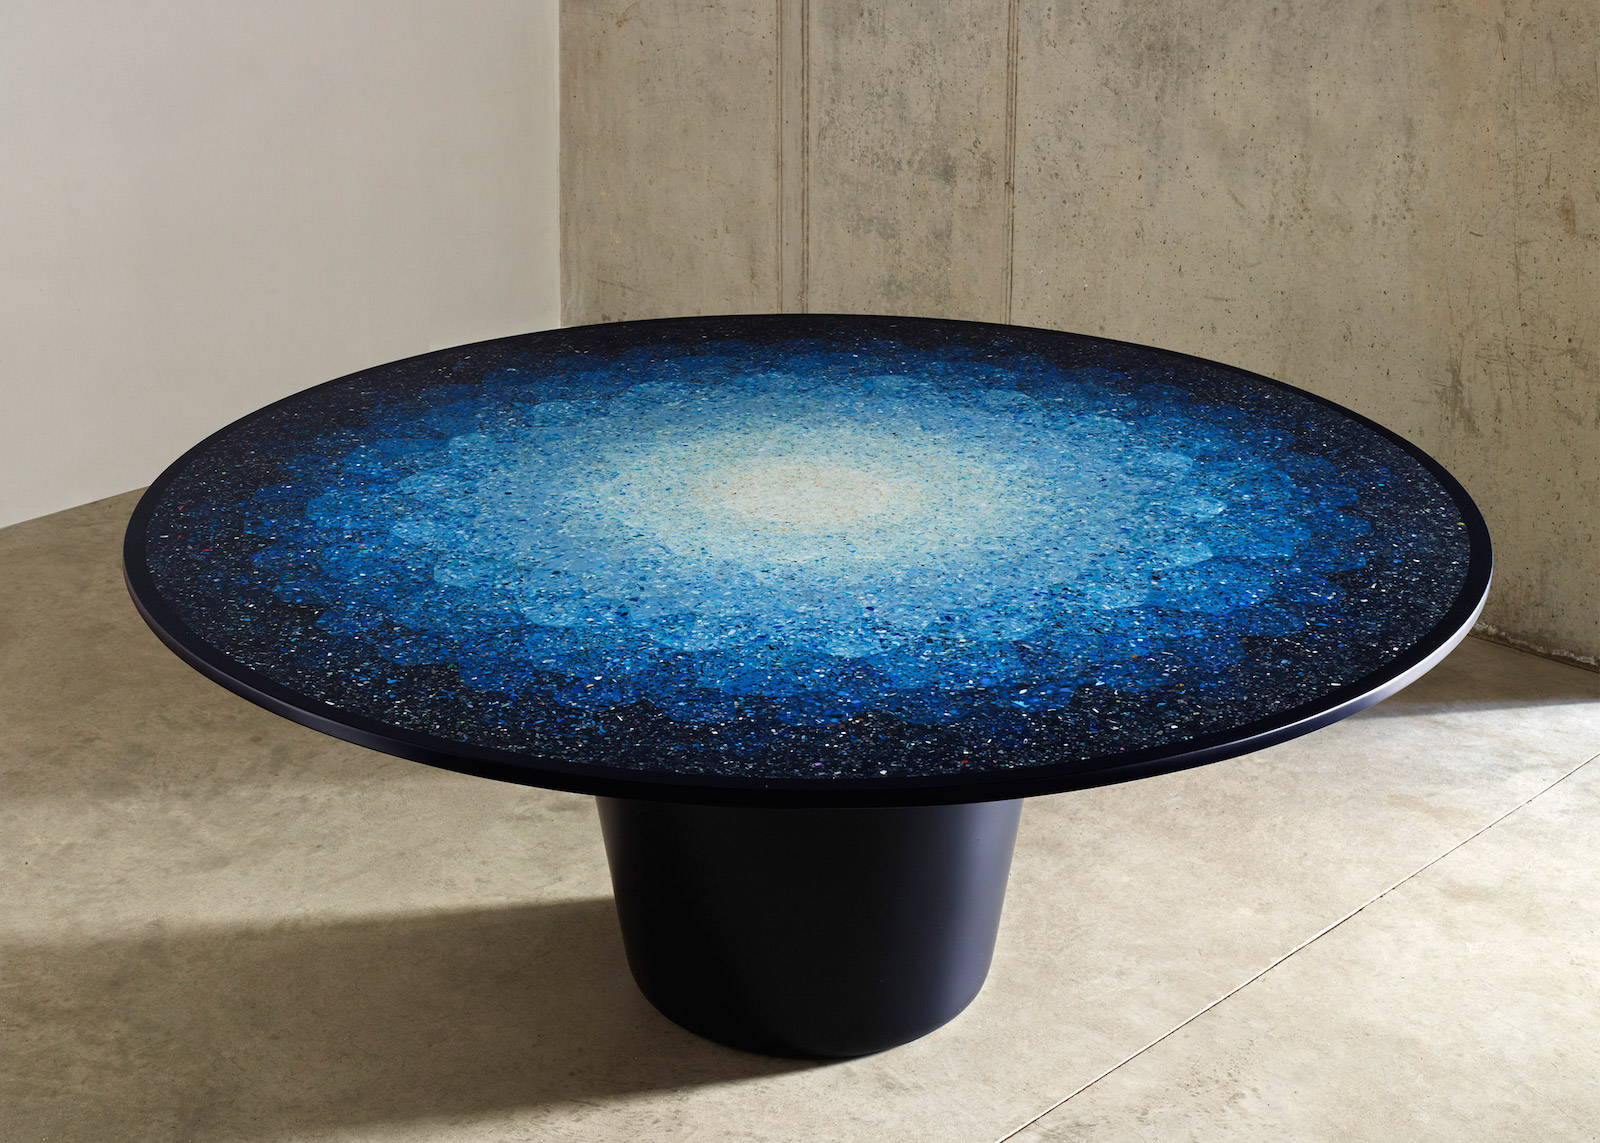 Brodie Neill's Gyro Table made from harvested ocean plastics. At the 2016 London Design Biennial, Australia Pavilion.